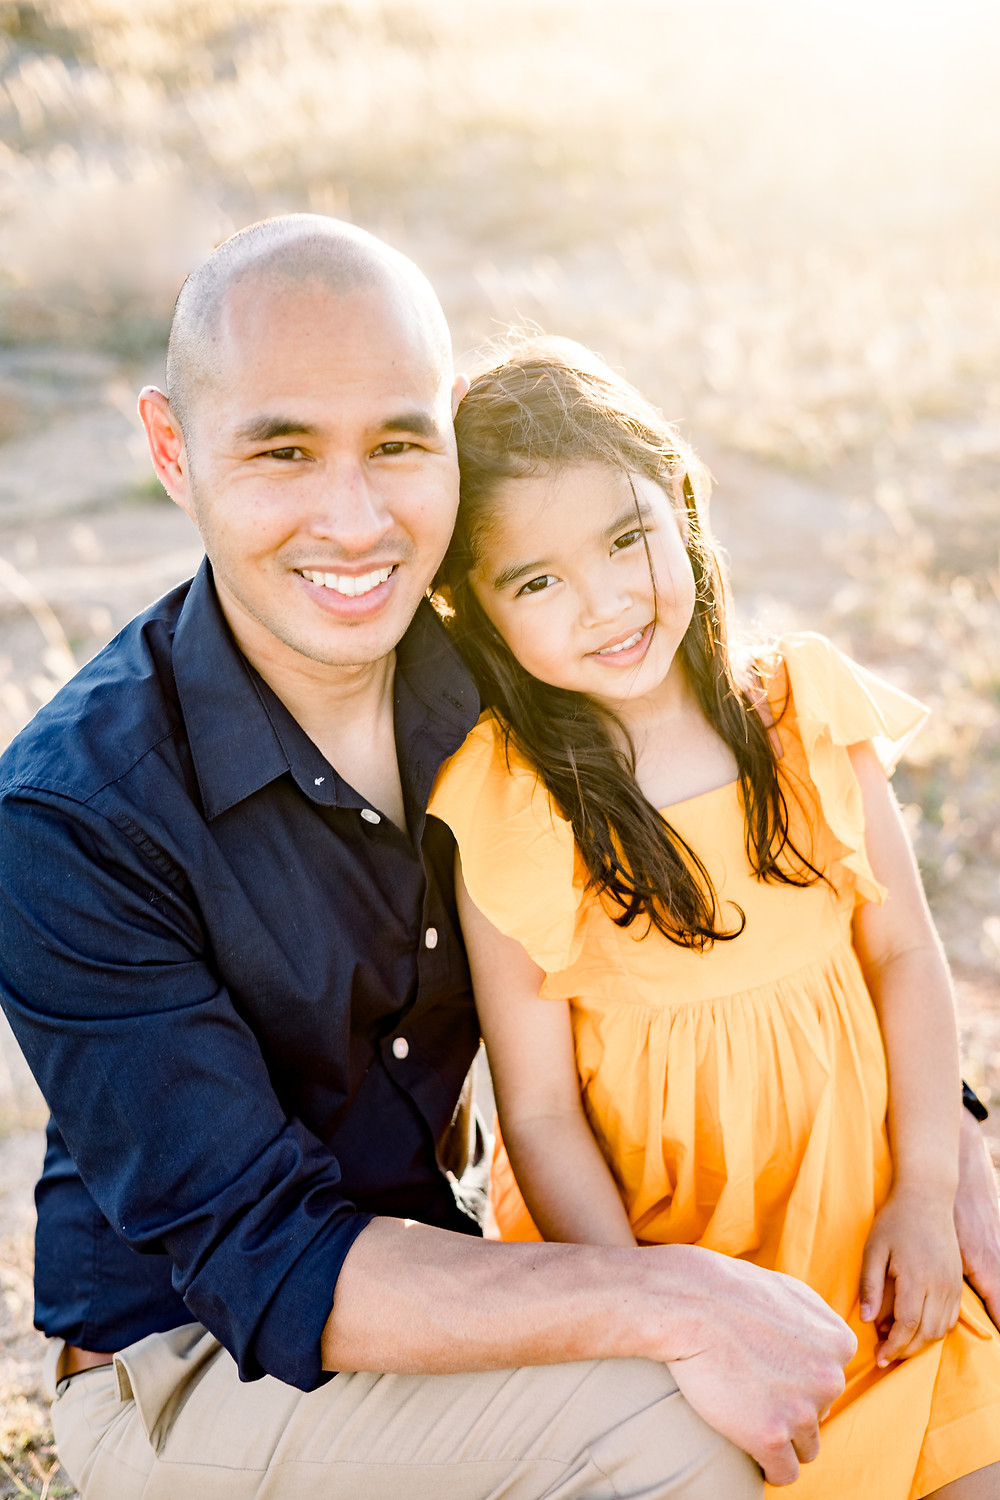 Family photo session in Fresno County by Ashley Norton Photography.